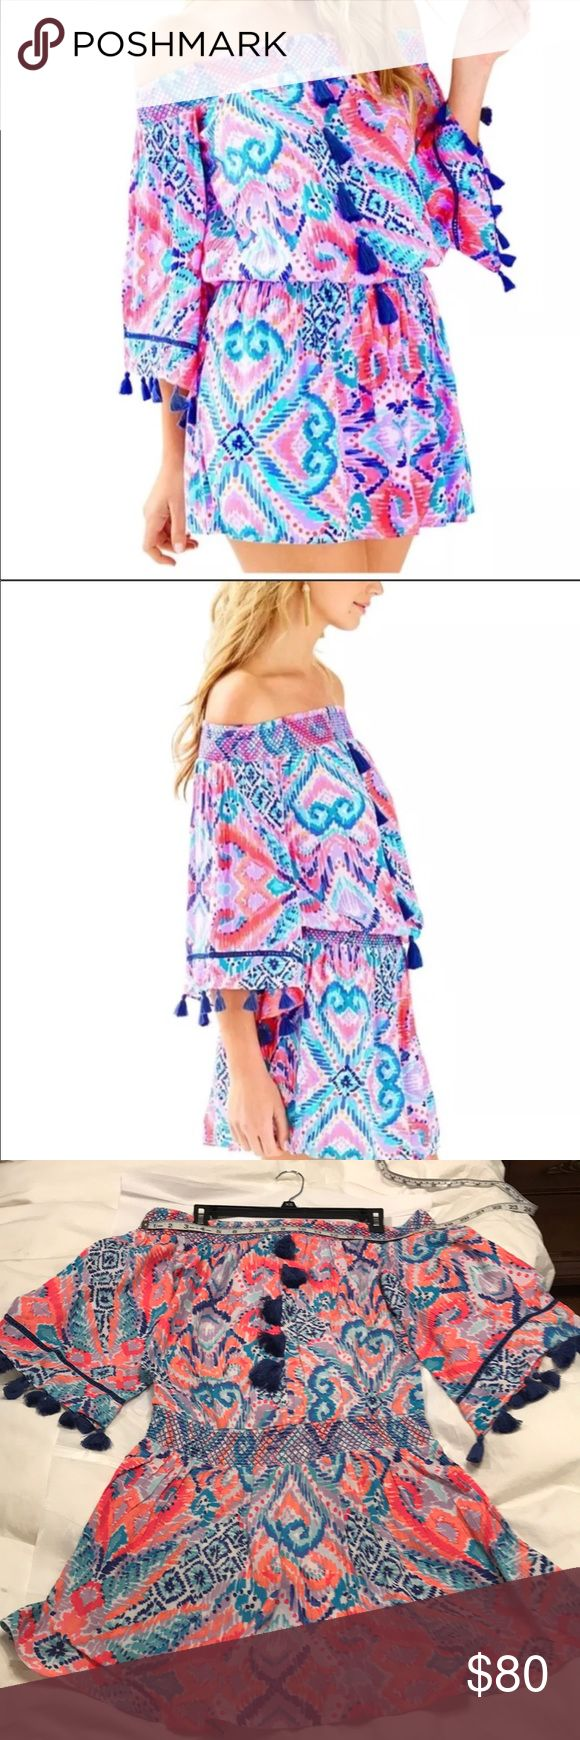 Lilly Pulitzer Joelle dress in Solar Opposite PRICE FIRM!  NWT gorgeous blue tassels. This off-shoulder style actually stays put on your shoulders and doesn't ride up when you lift your arms! Lilly Pulitzer Dresses Mini